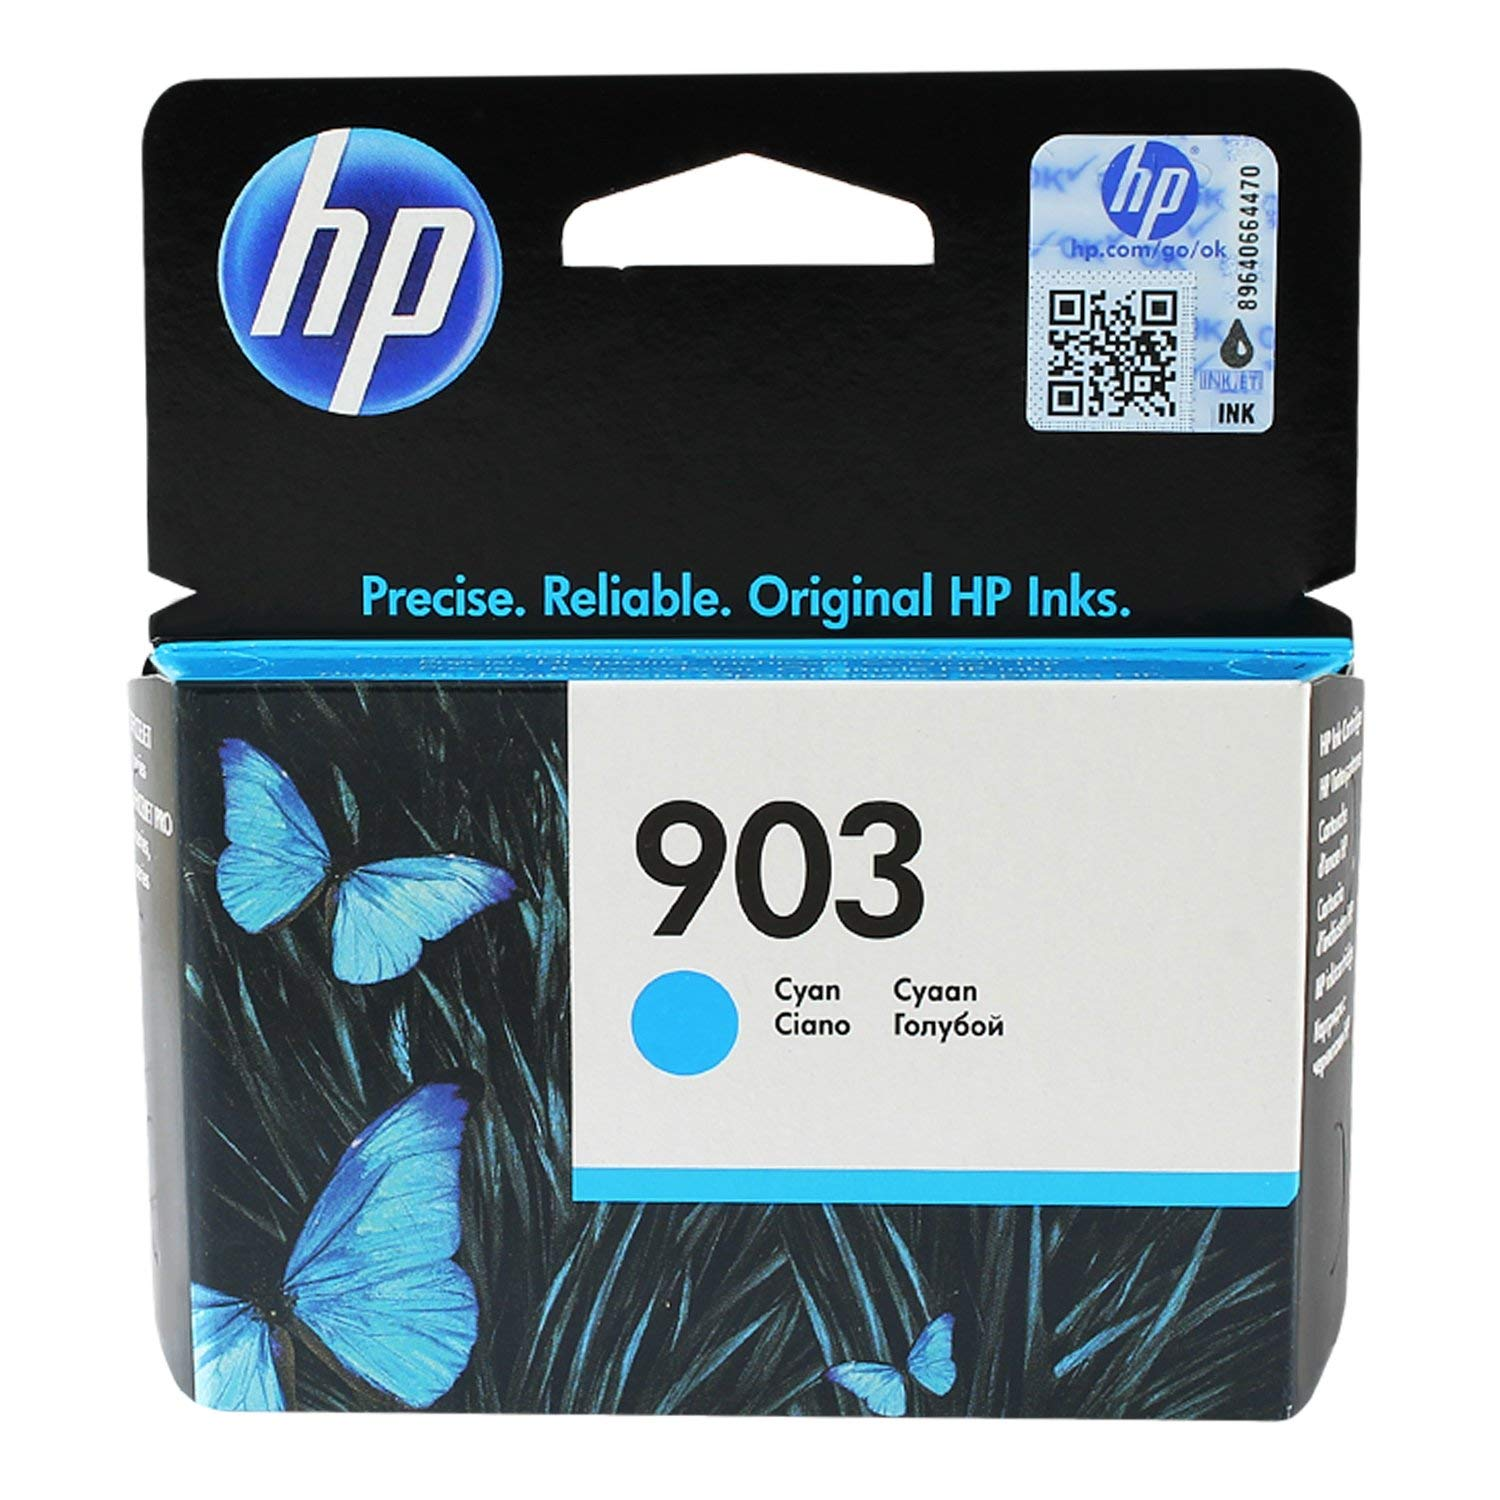 HP 903 (T6L87AE) Original Ink Cartridge - Cyan